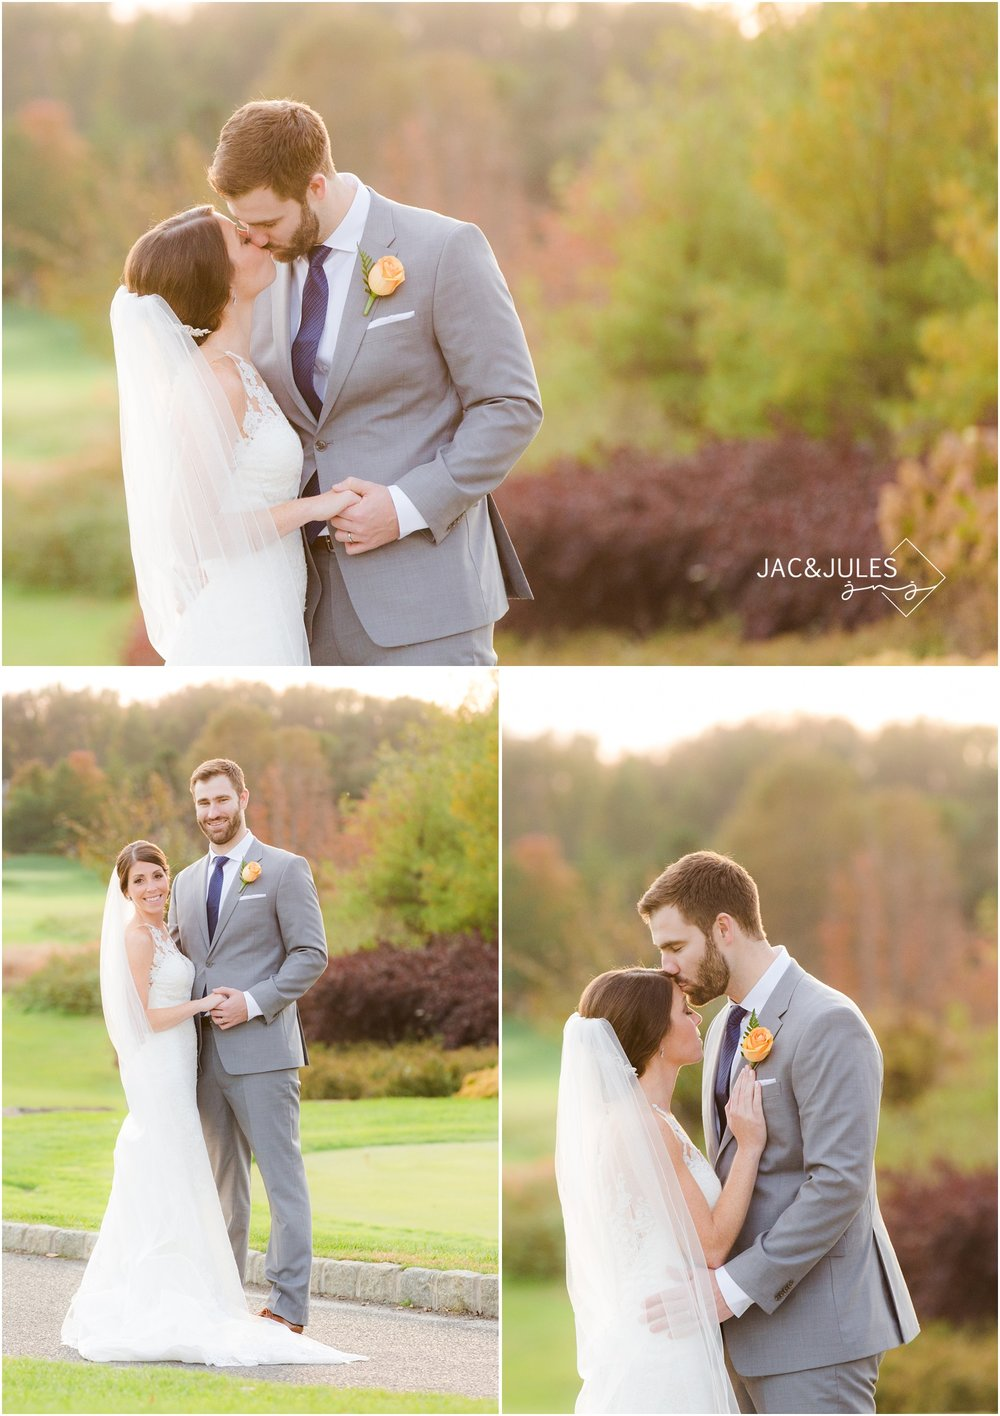 Bride and groom portraits in fall foliage at Eagle Oaks Golf and Country Club in Farmingdale, NJ.